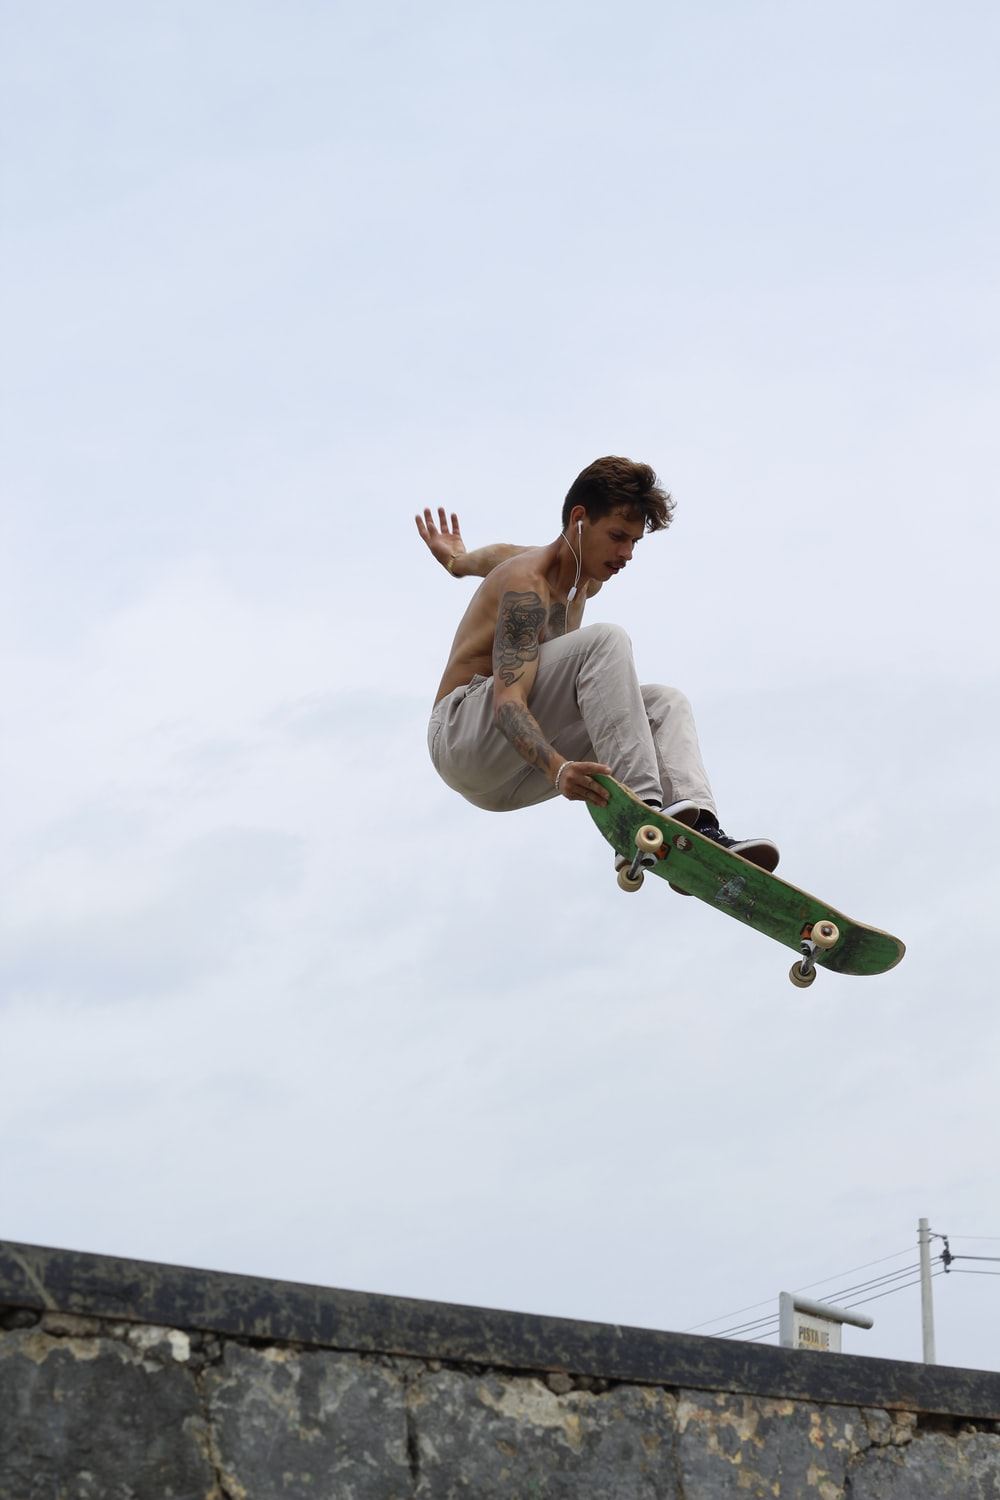 man in white tank top and green pants riding green skateboard during daytime